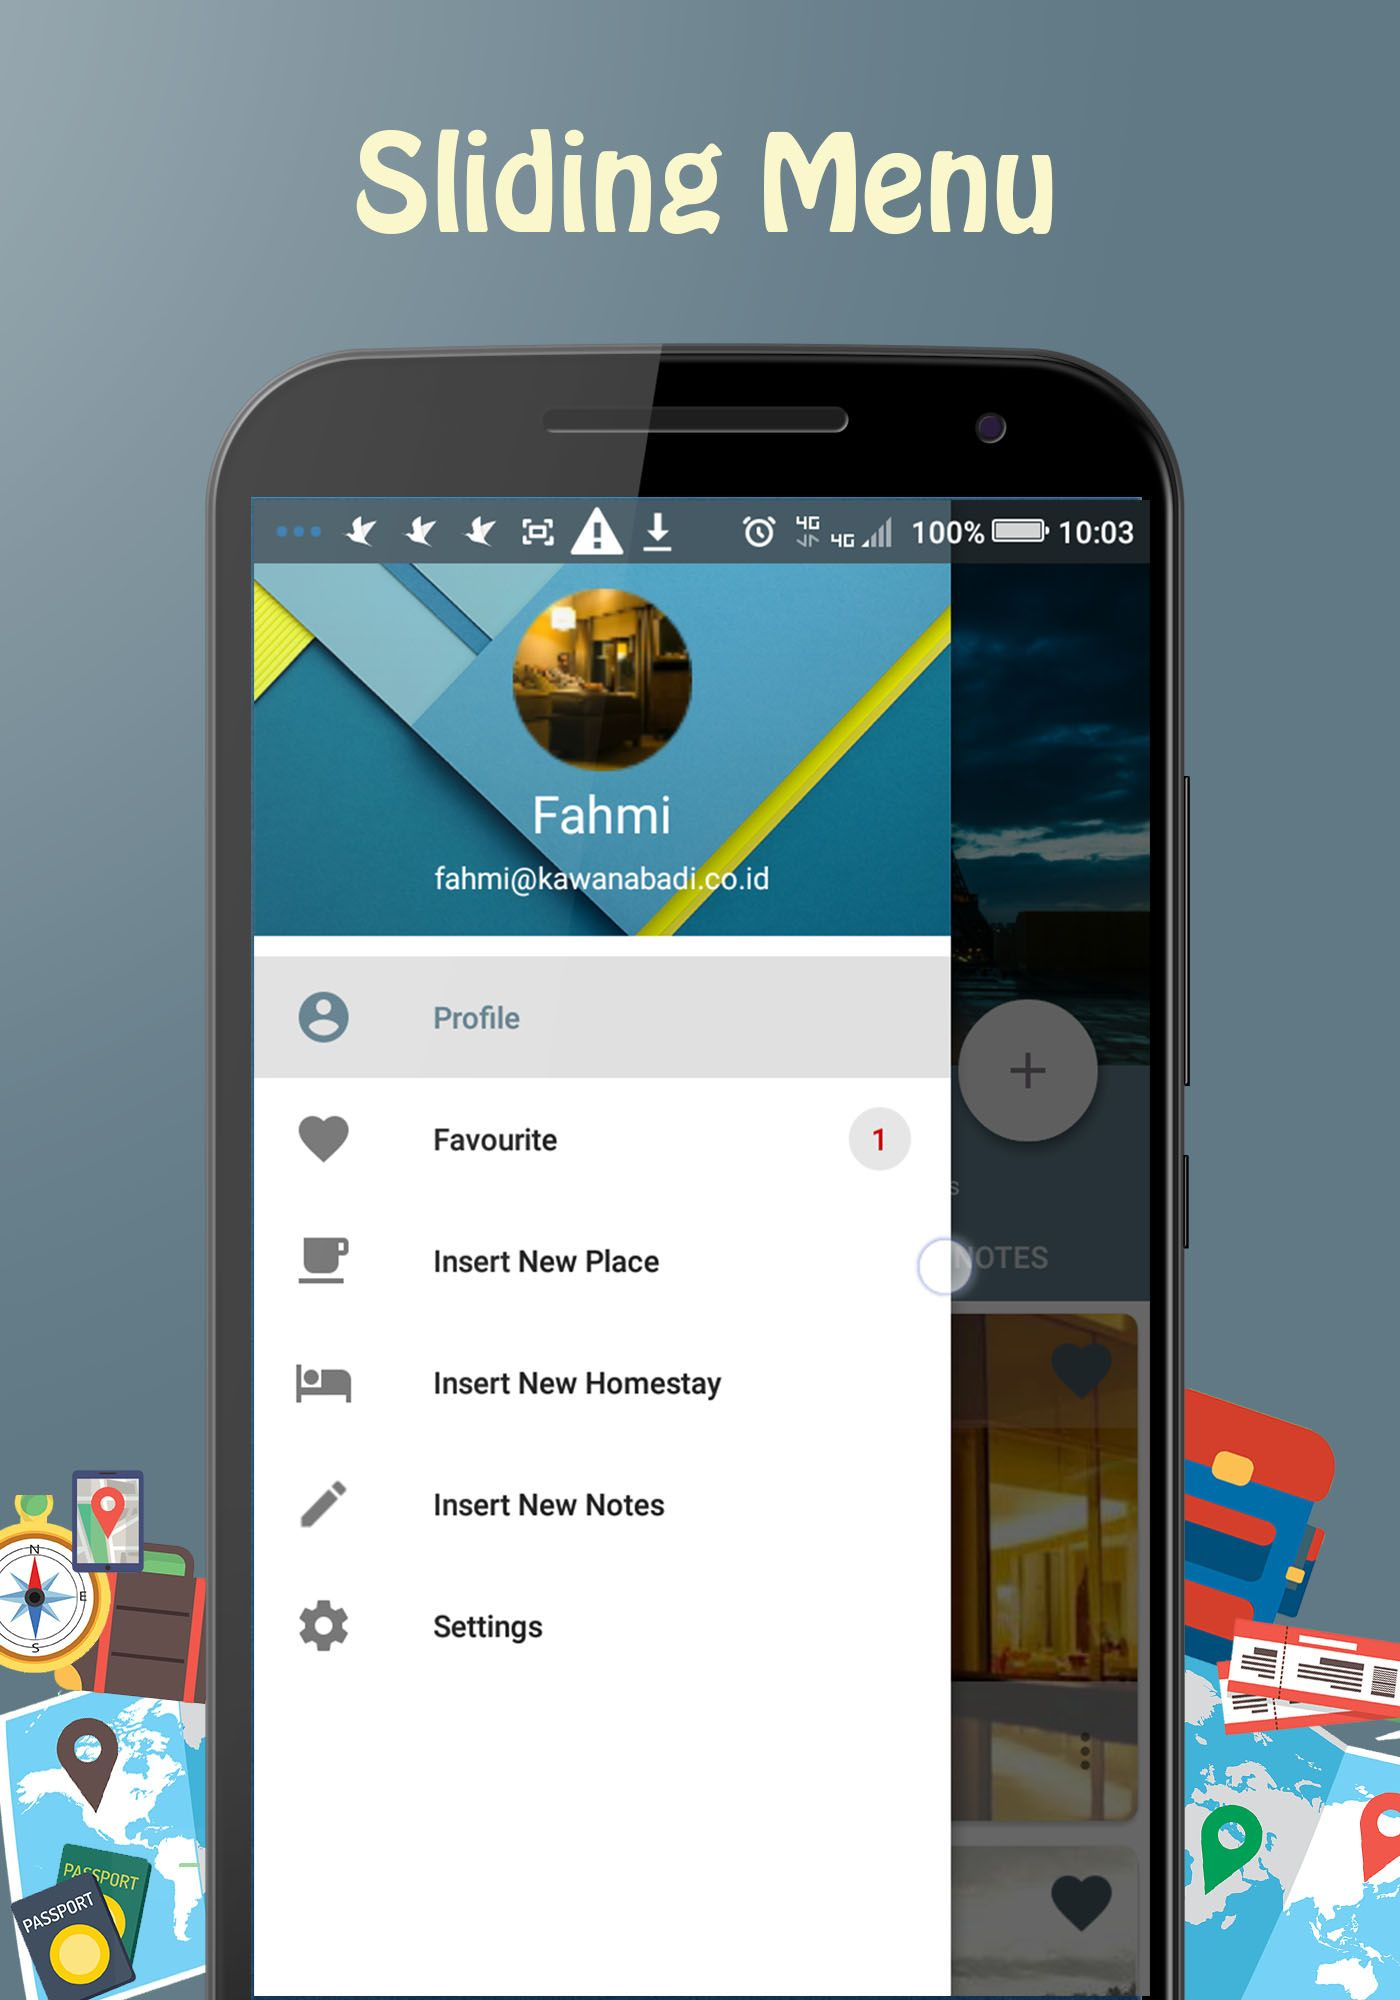 Backpacker - Android Travel App Screenshot 12